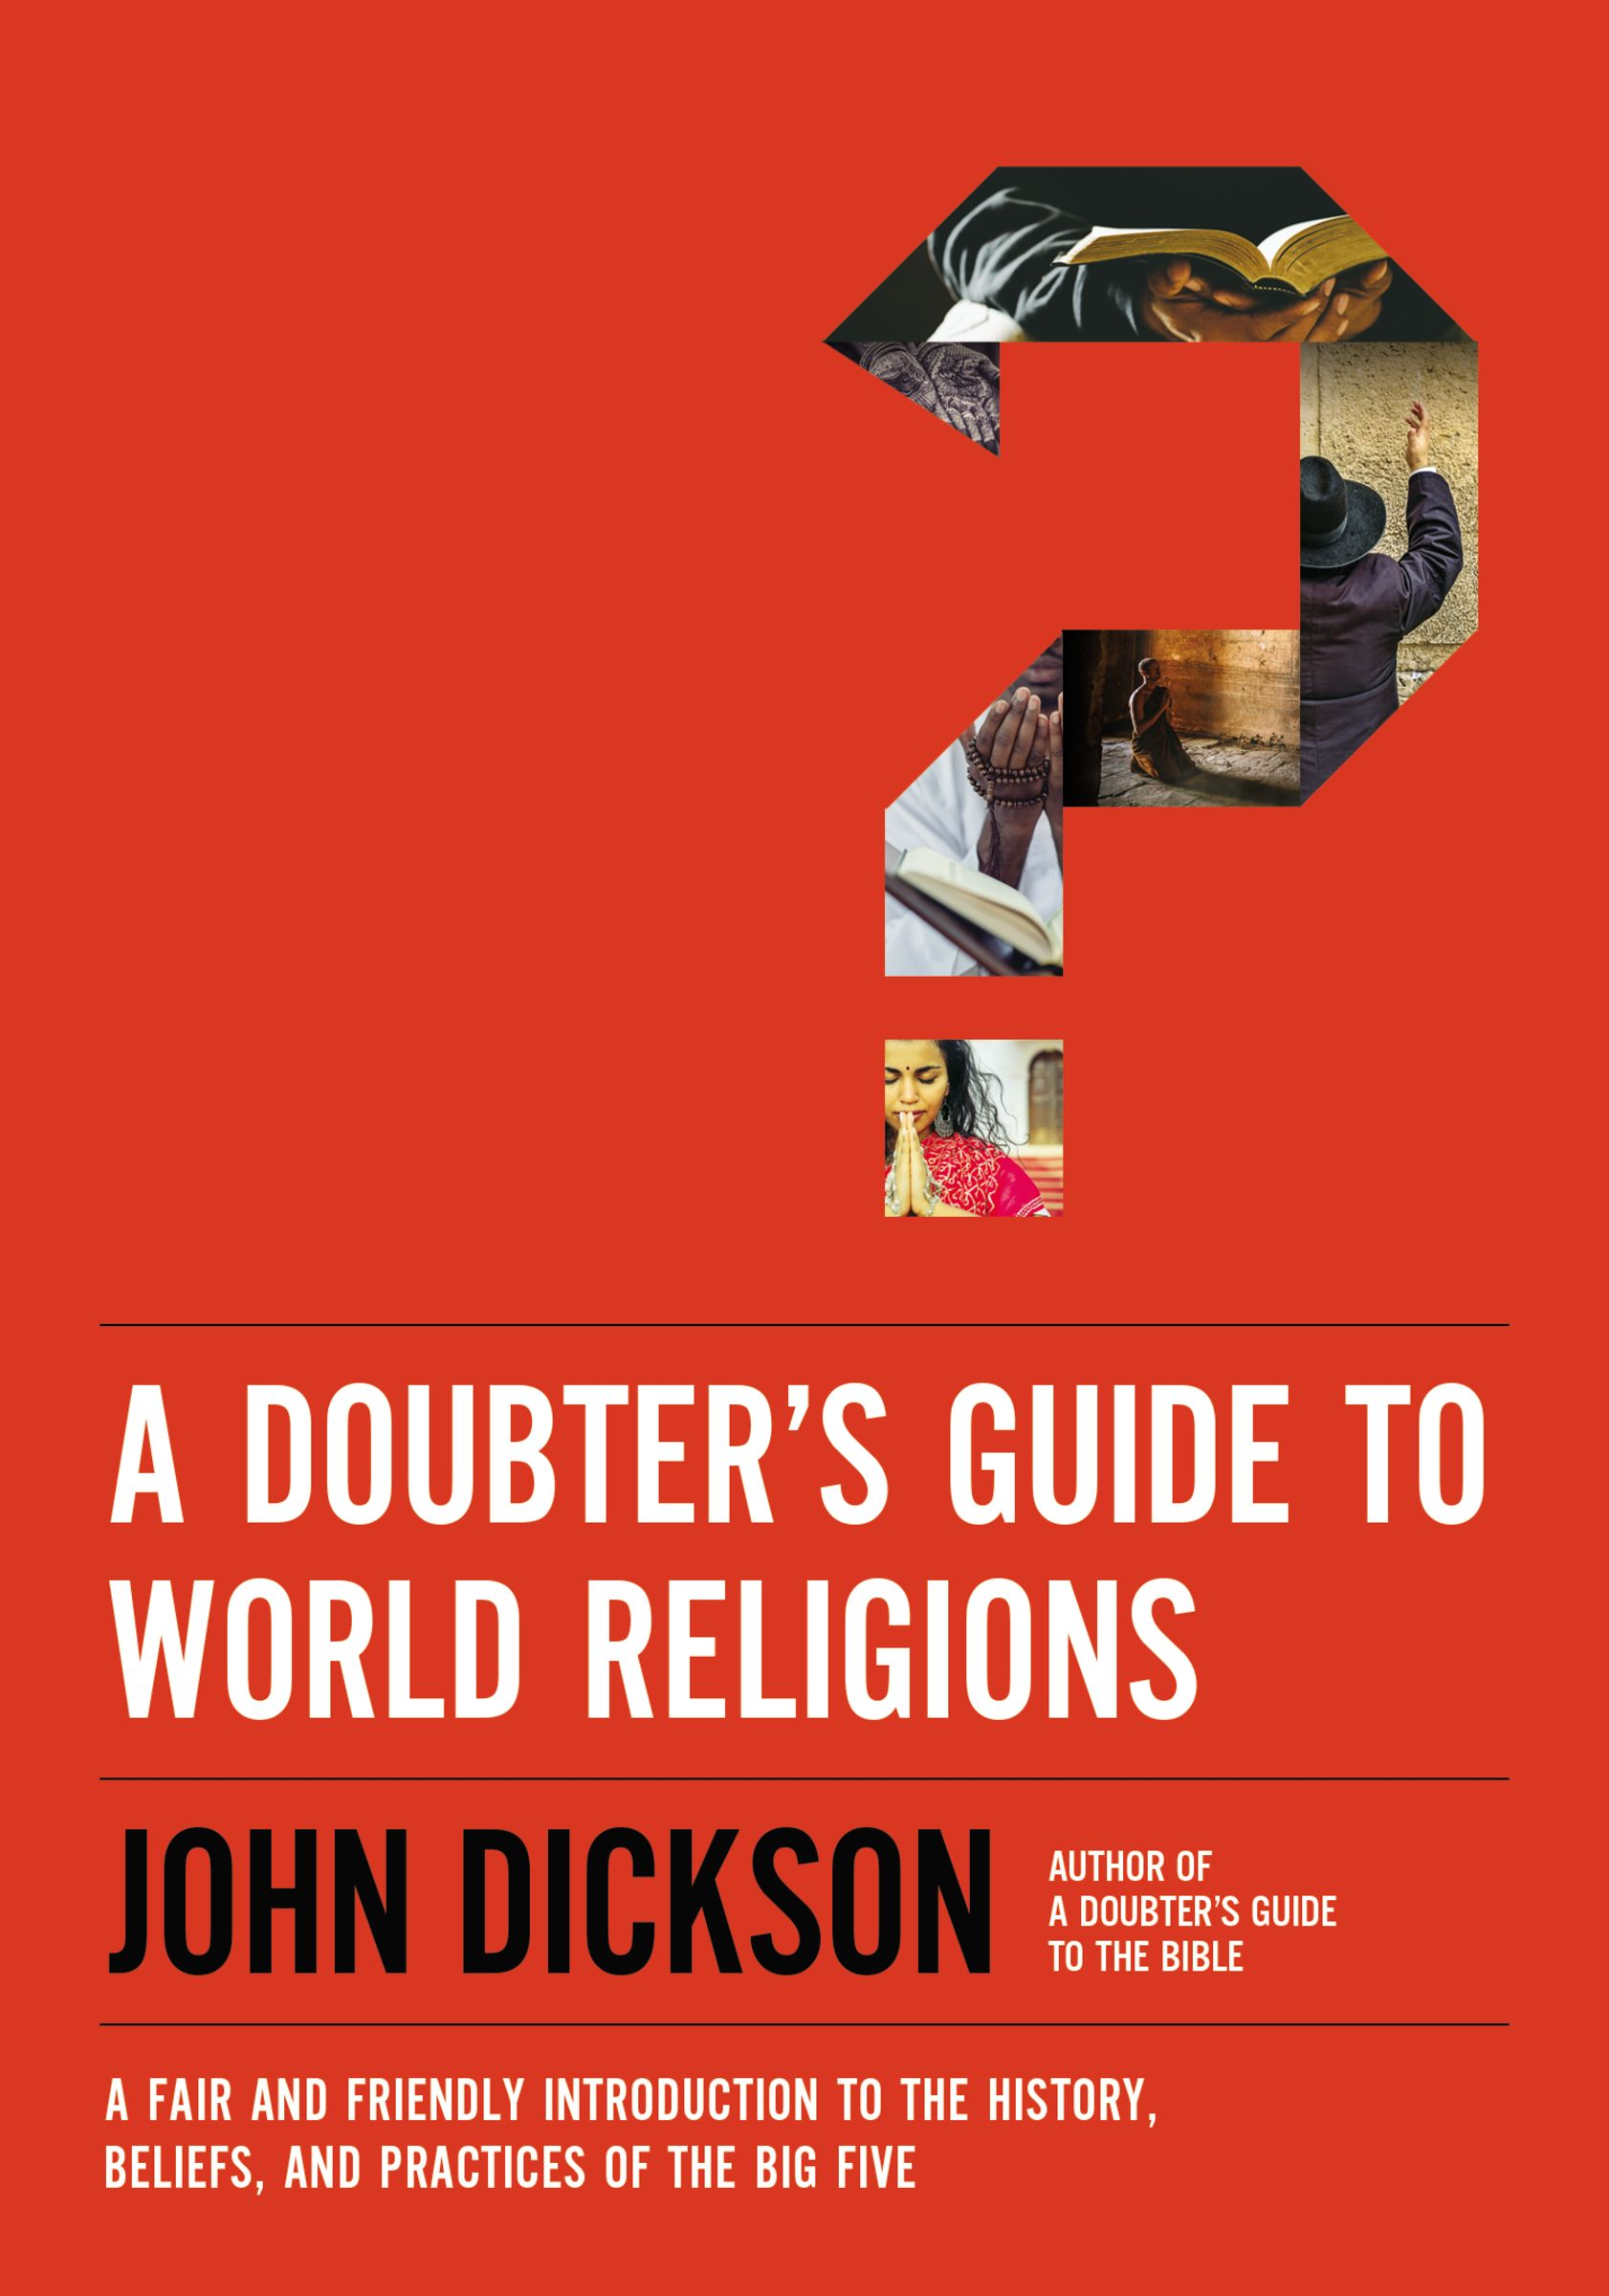 A Doubter's Guide to World Religions